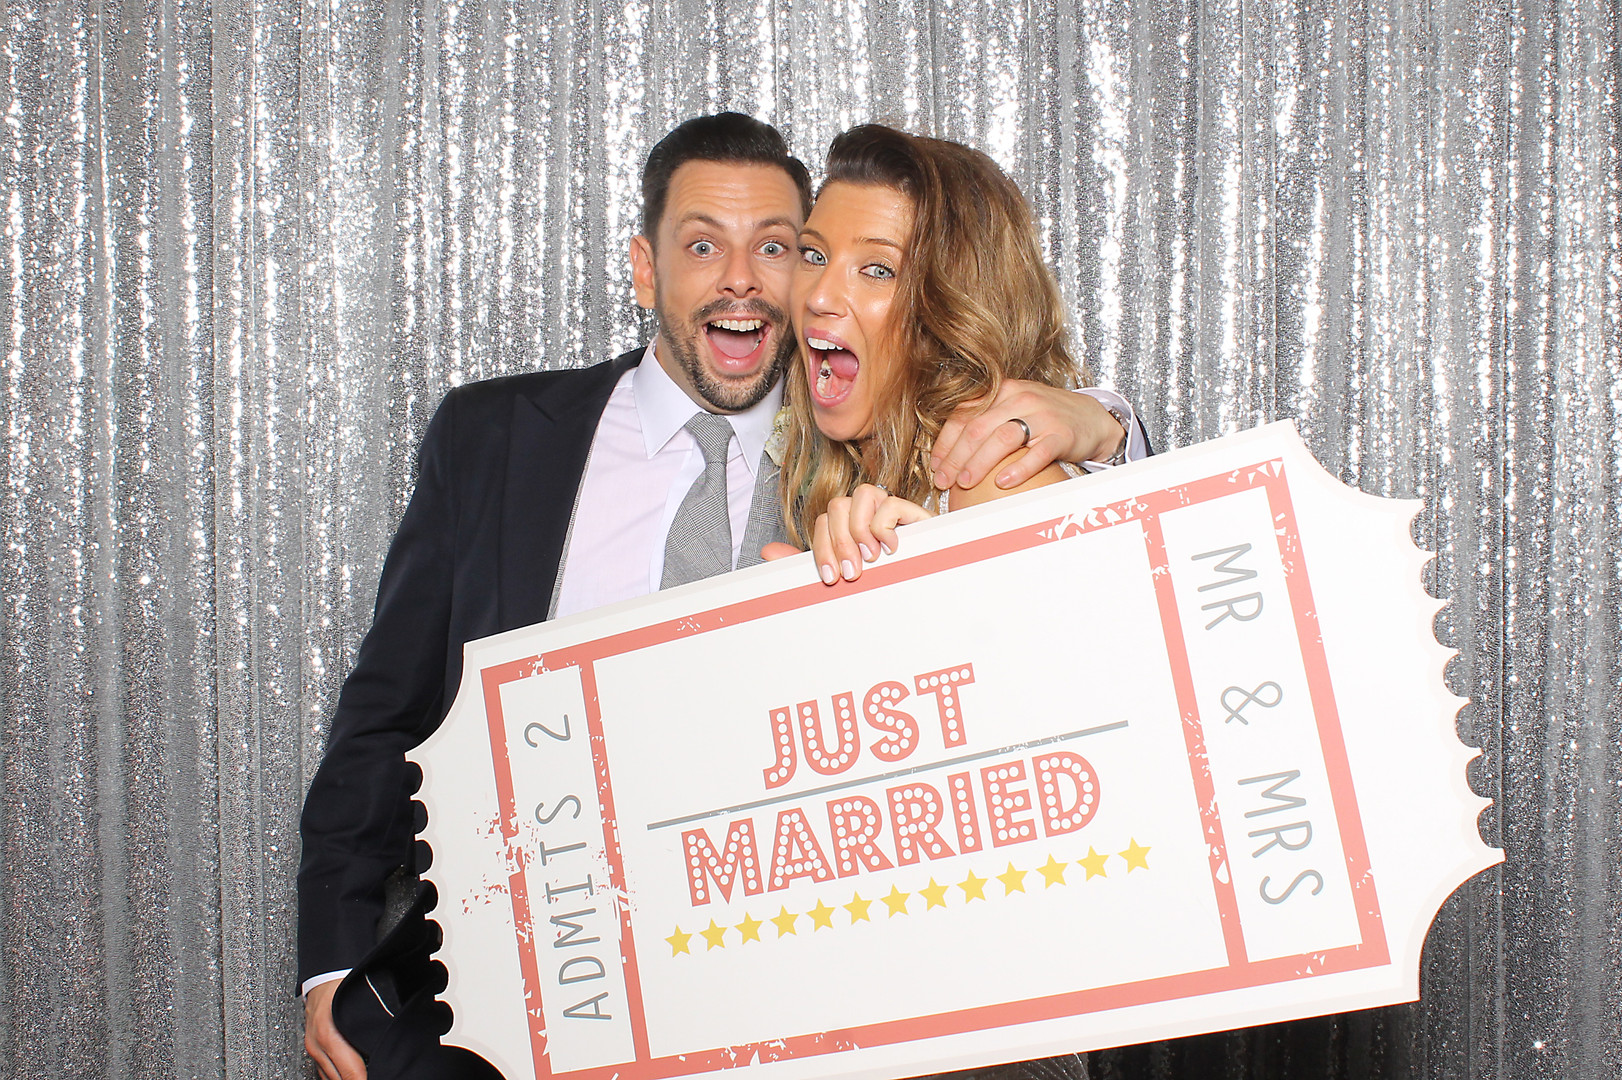 Newly weds photo booth